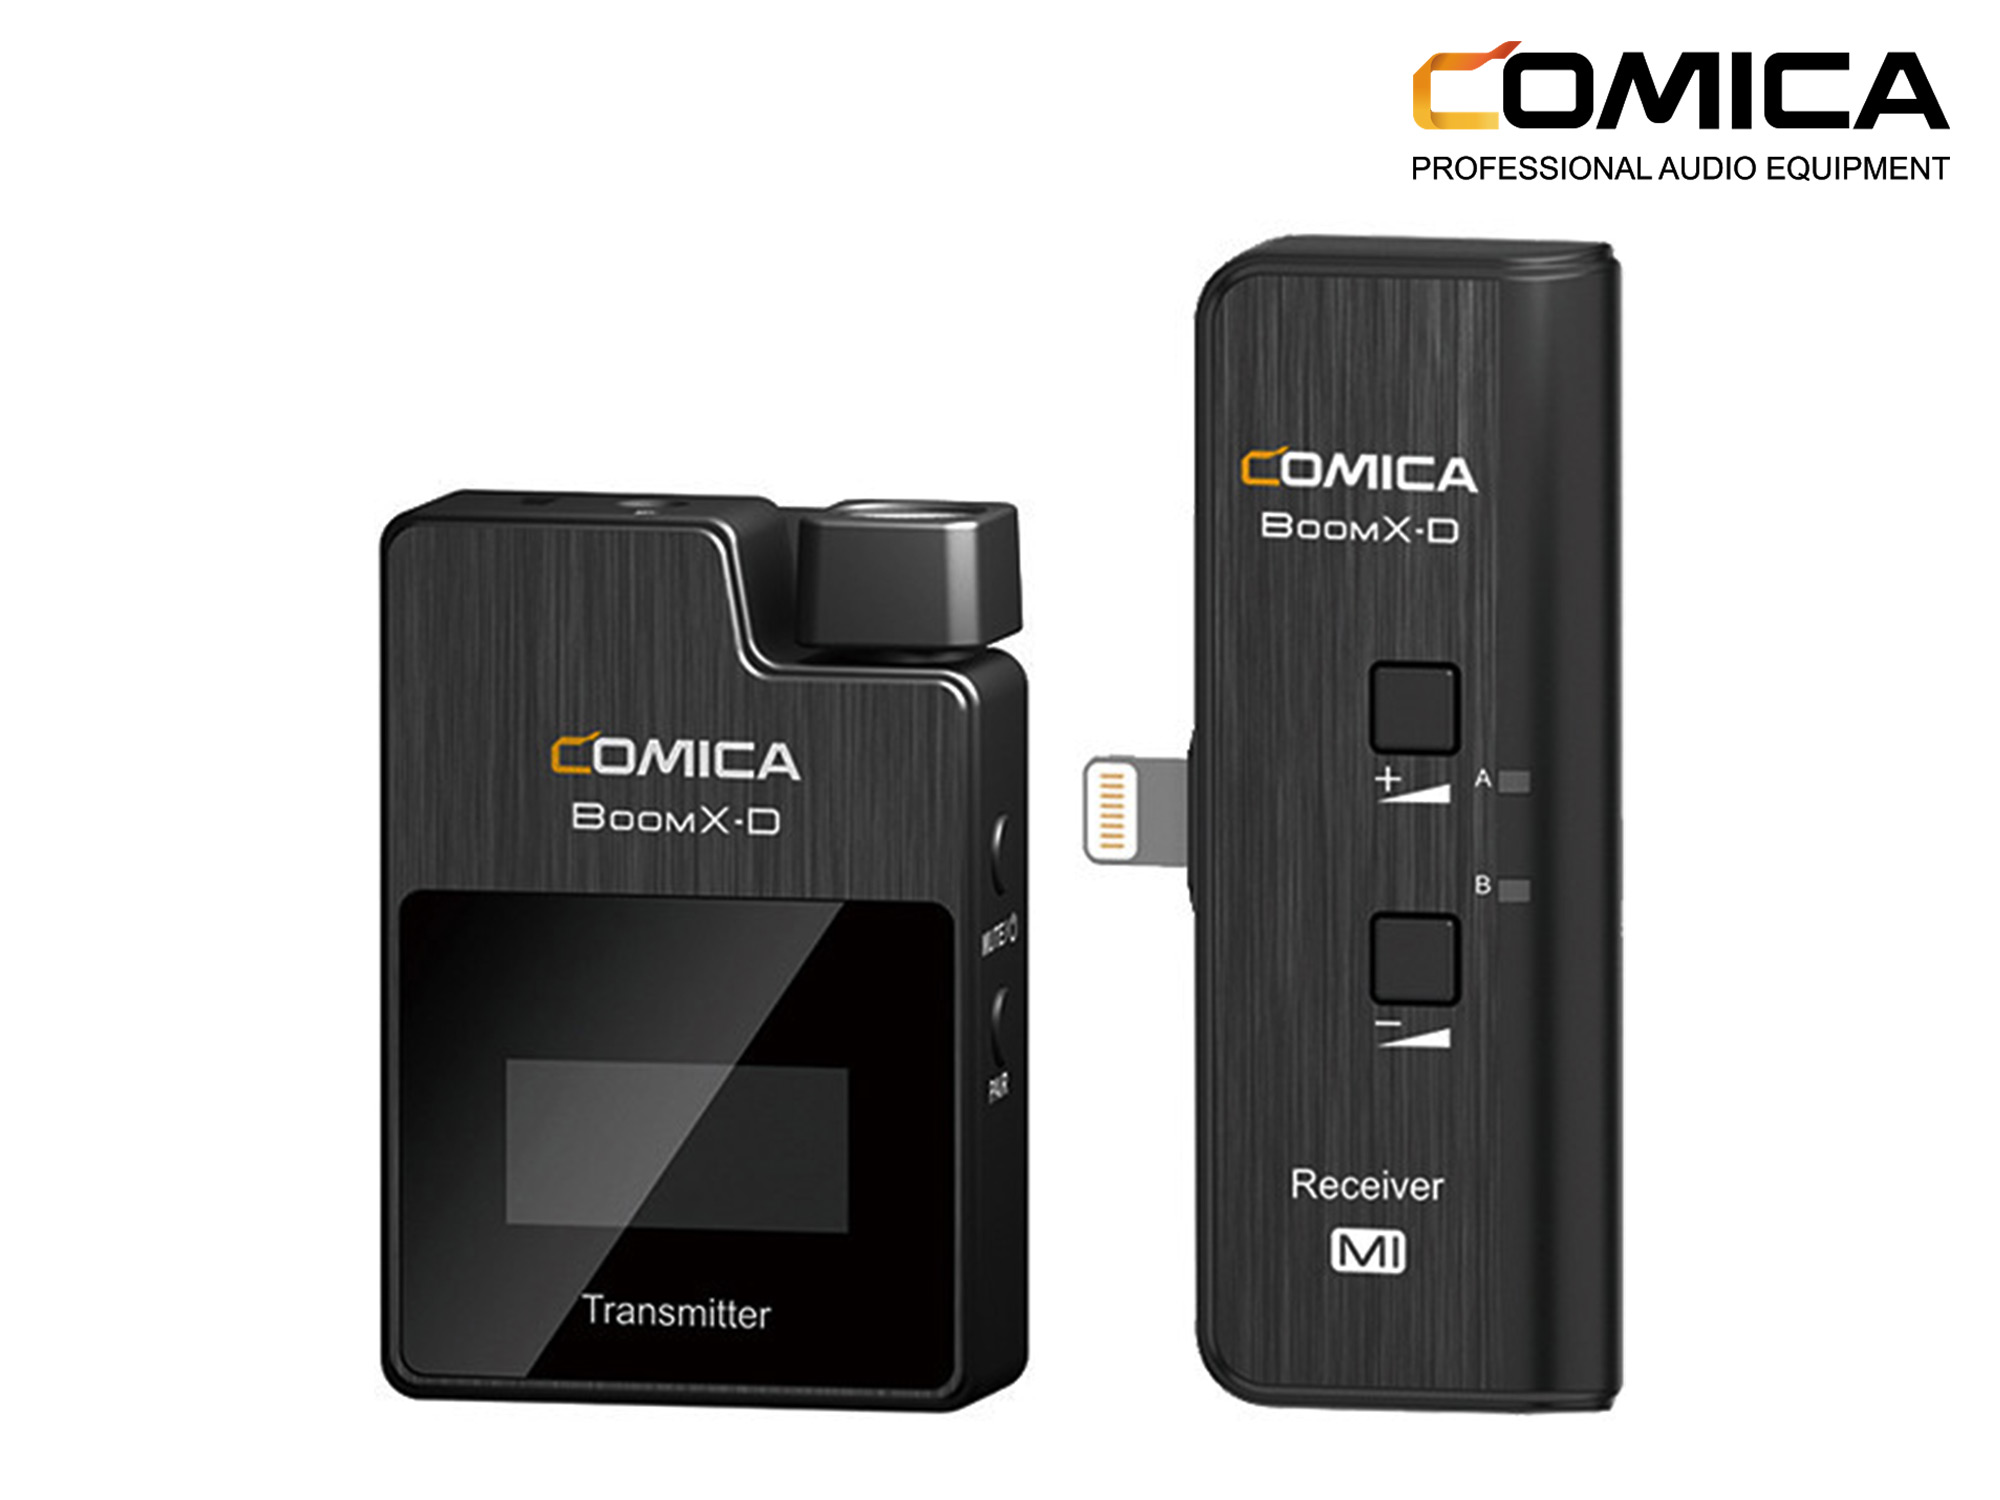 Comica BoomX-D MI1 Ultracompact Digital Wireless Microphone System for iOS Smartphones (2.4 GHz)